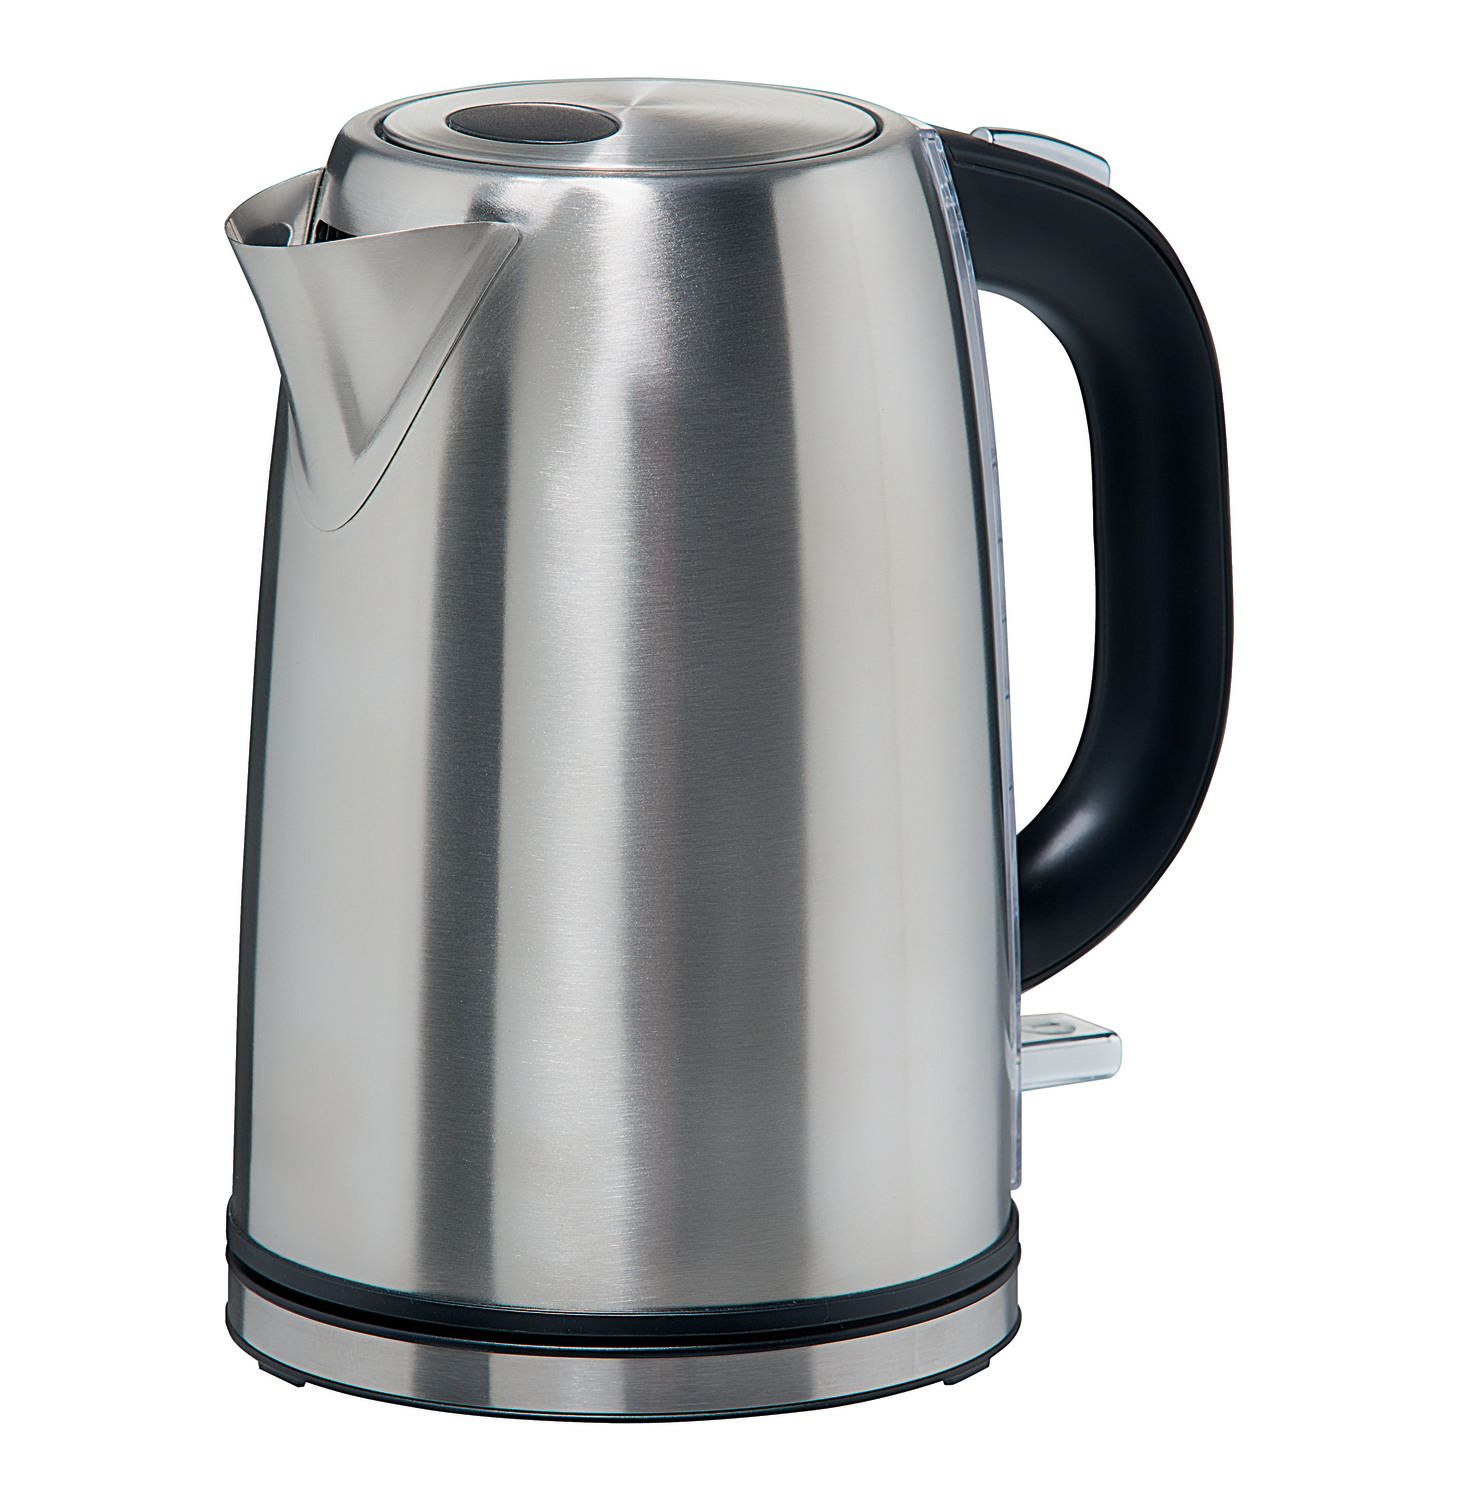 Uncategorized Defy Kitchen Appliances defy stainless steel kettle makro online floor 6 kitchen online